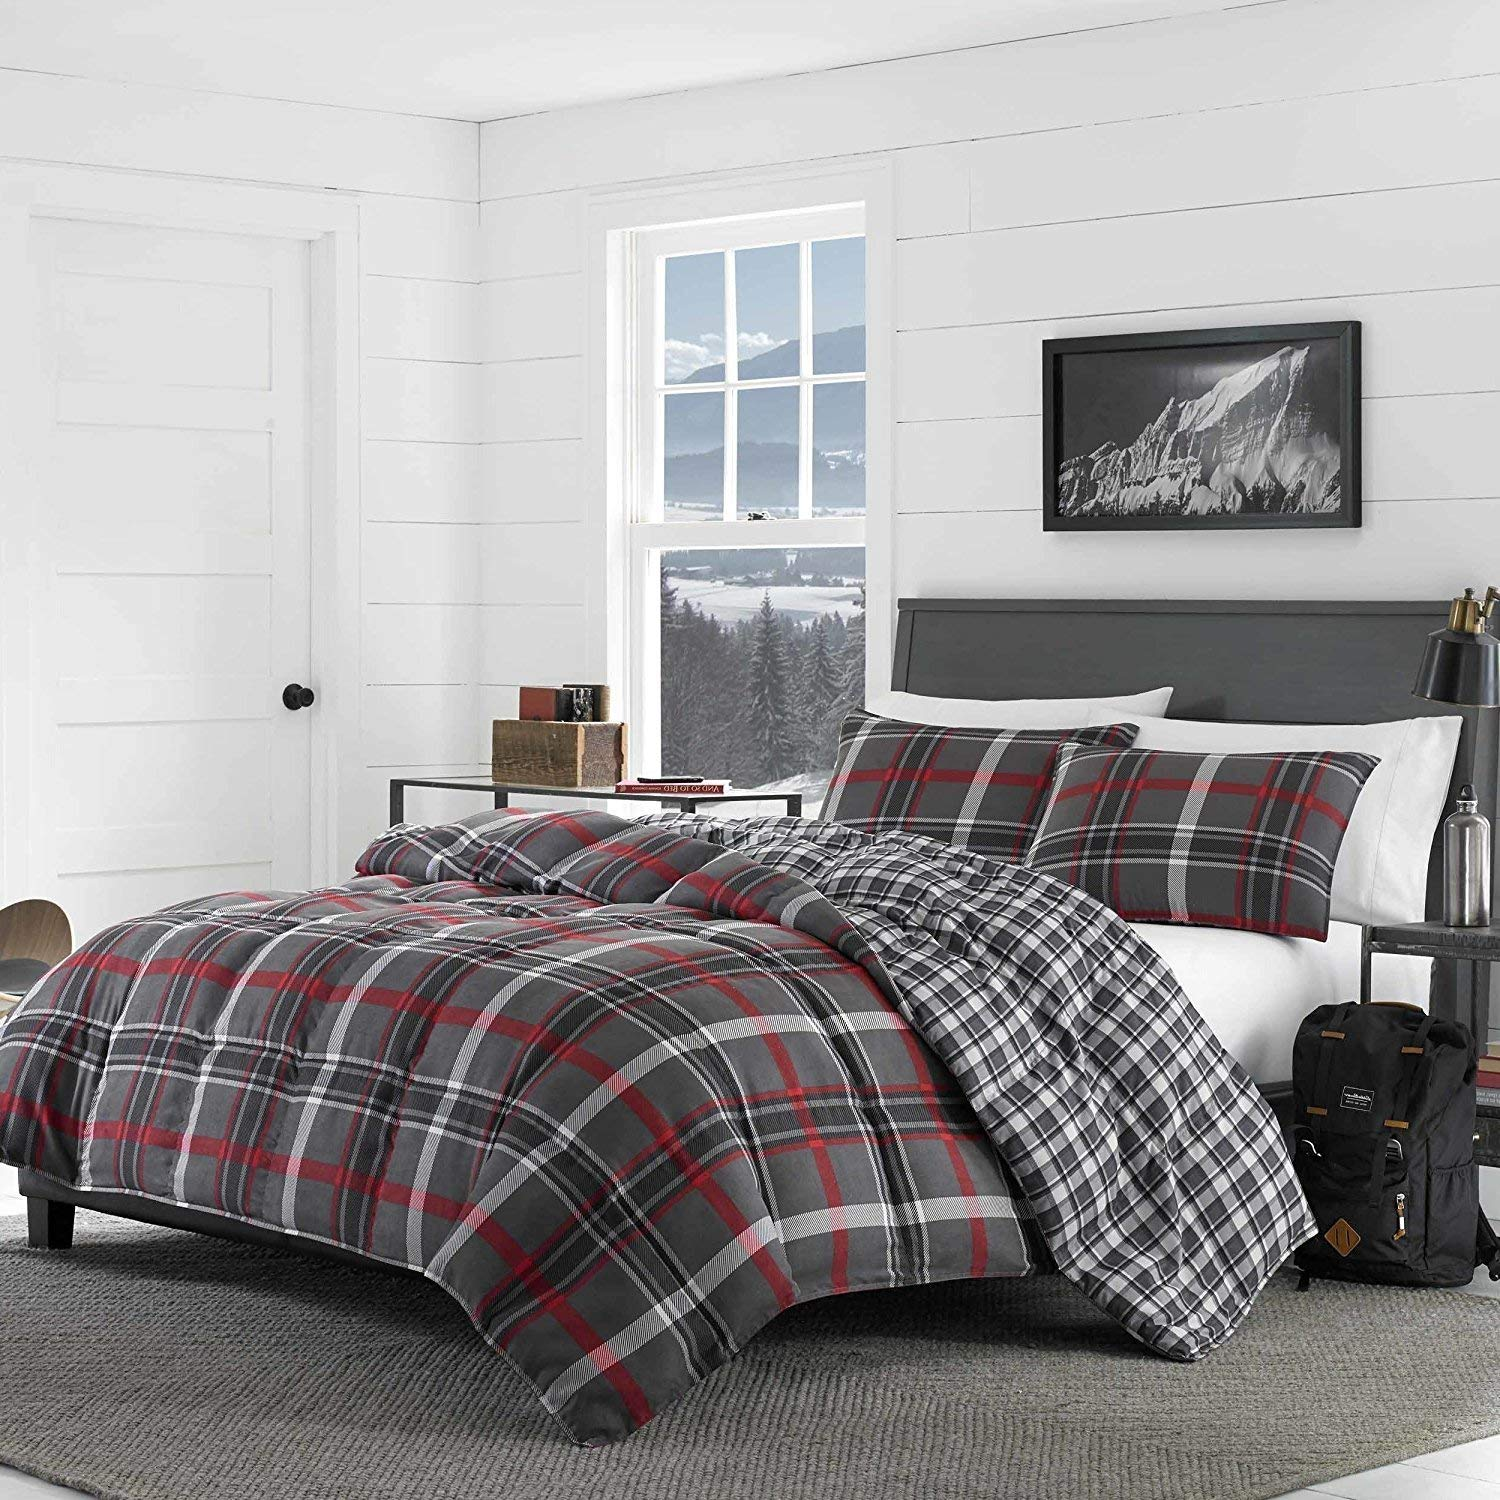 DP 3pc Red Grey Plaid Comforter King Set, Gray Checked Bedding Cabin Themed Lodge Lumberjack Pattern Country Hunting Black White Medium Warmth Patchwork, Cotton Polyester